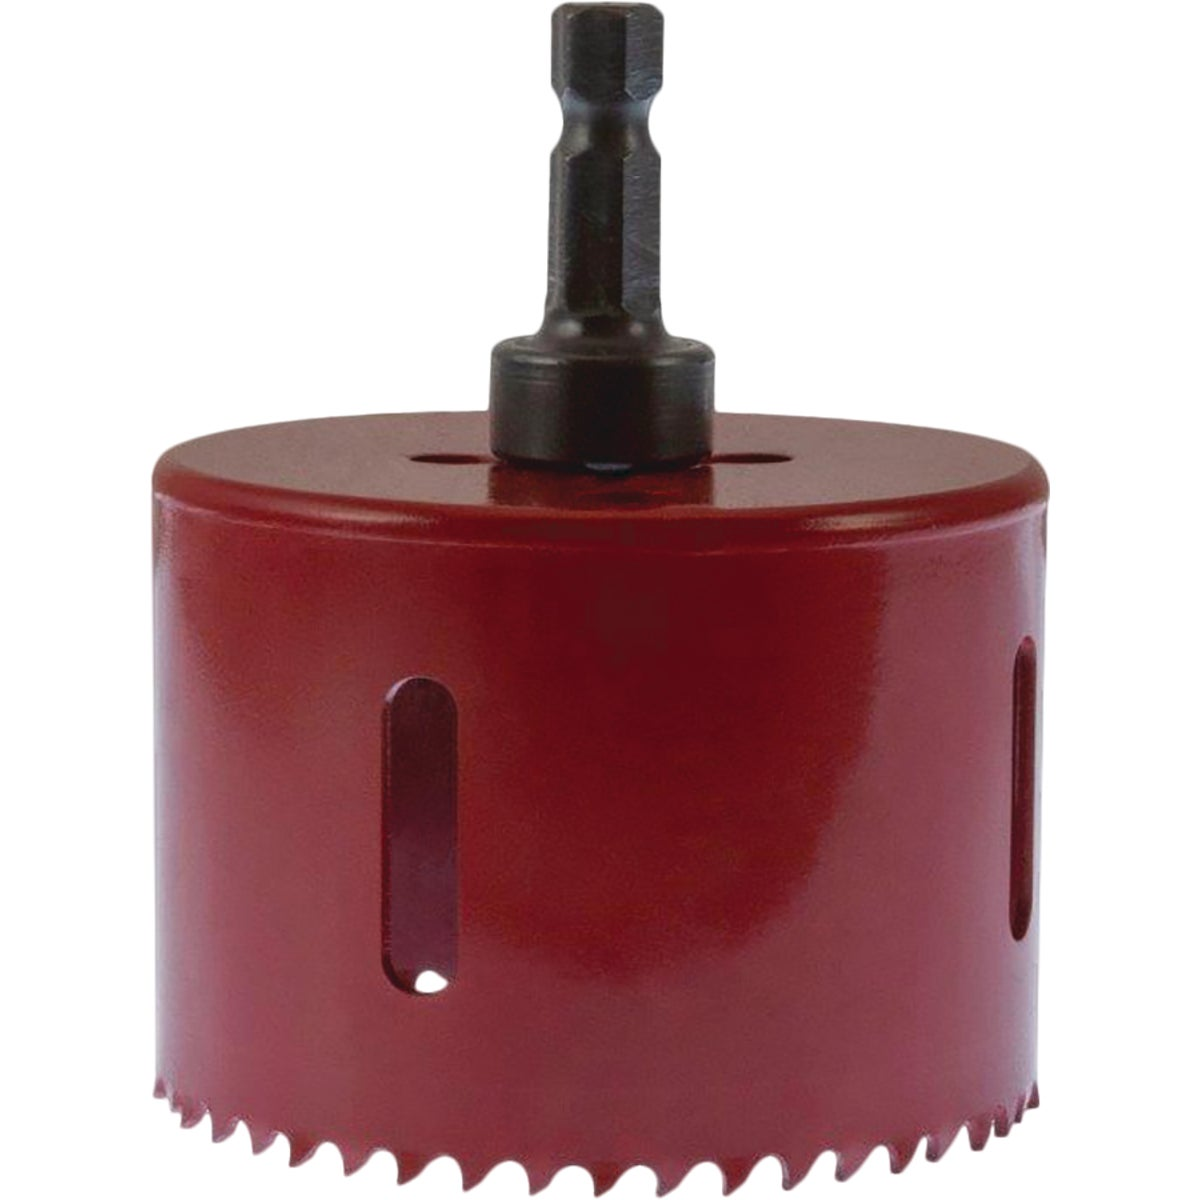 "2-7/8"" HOLE SAW - 336657 by M K Morse Co"